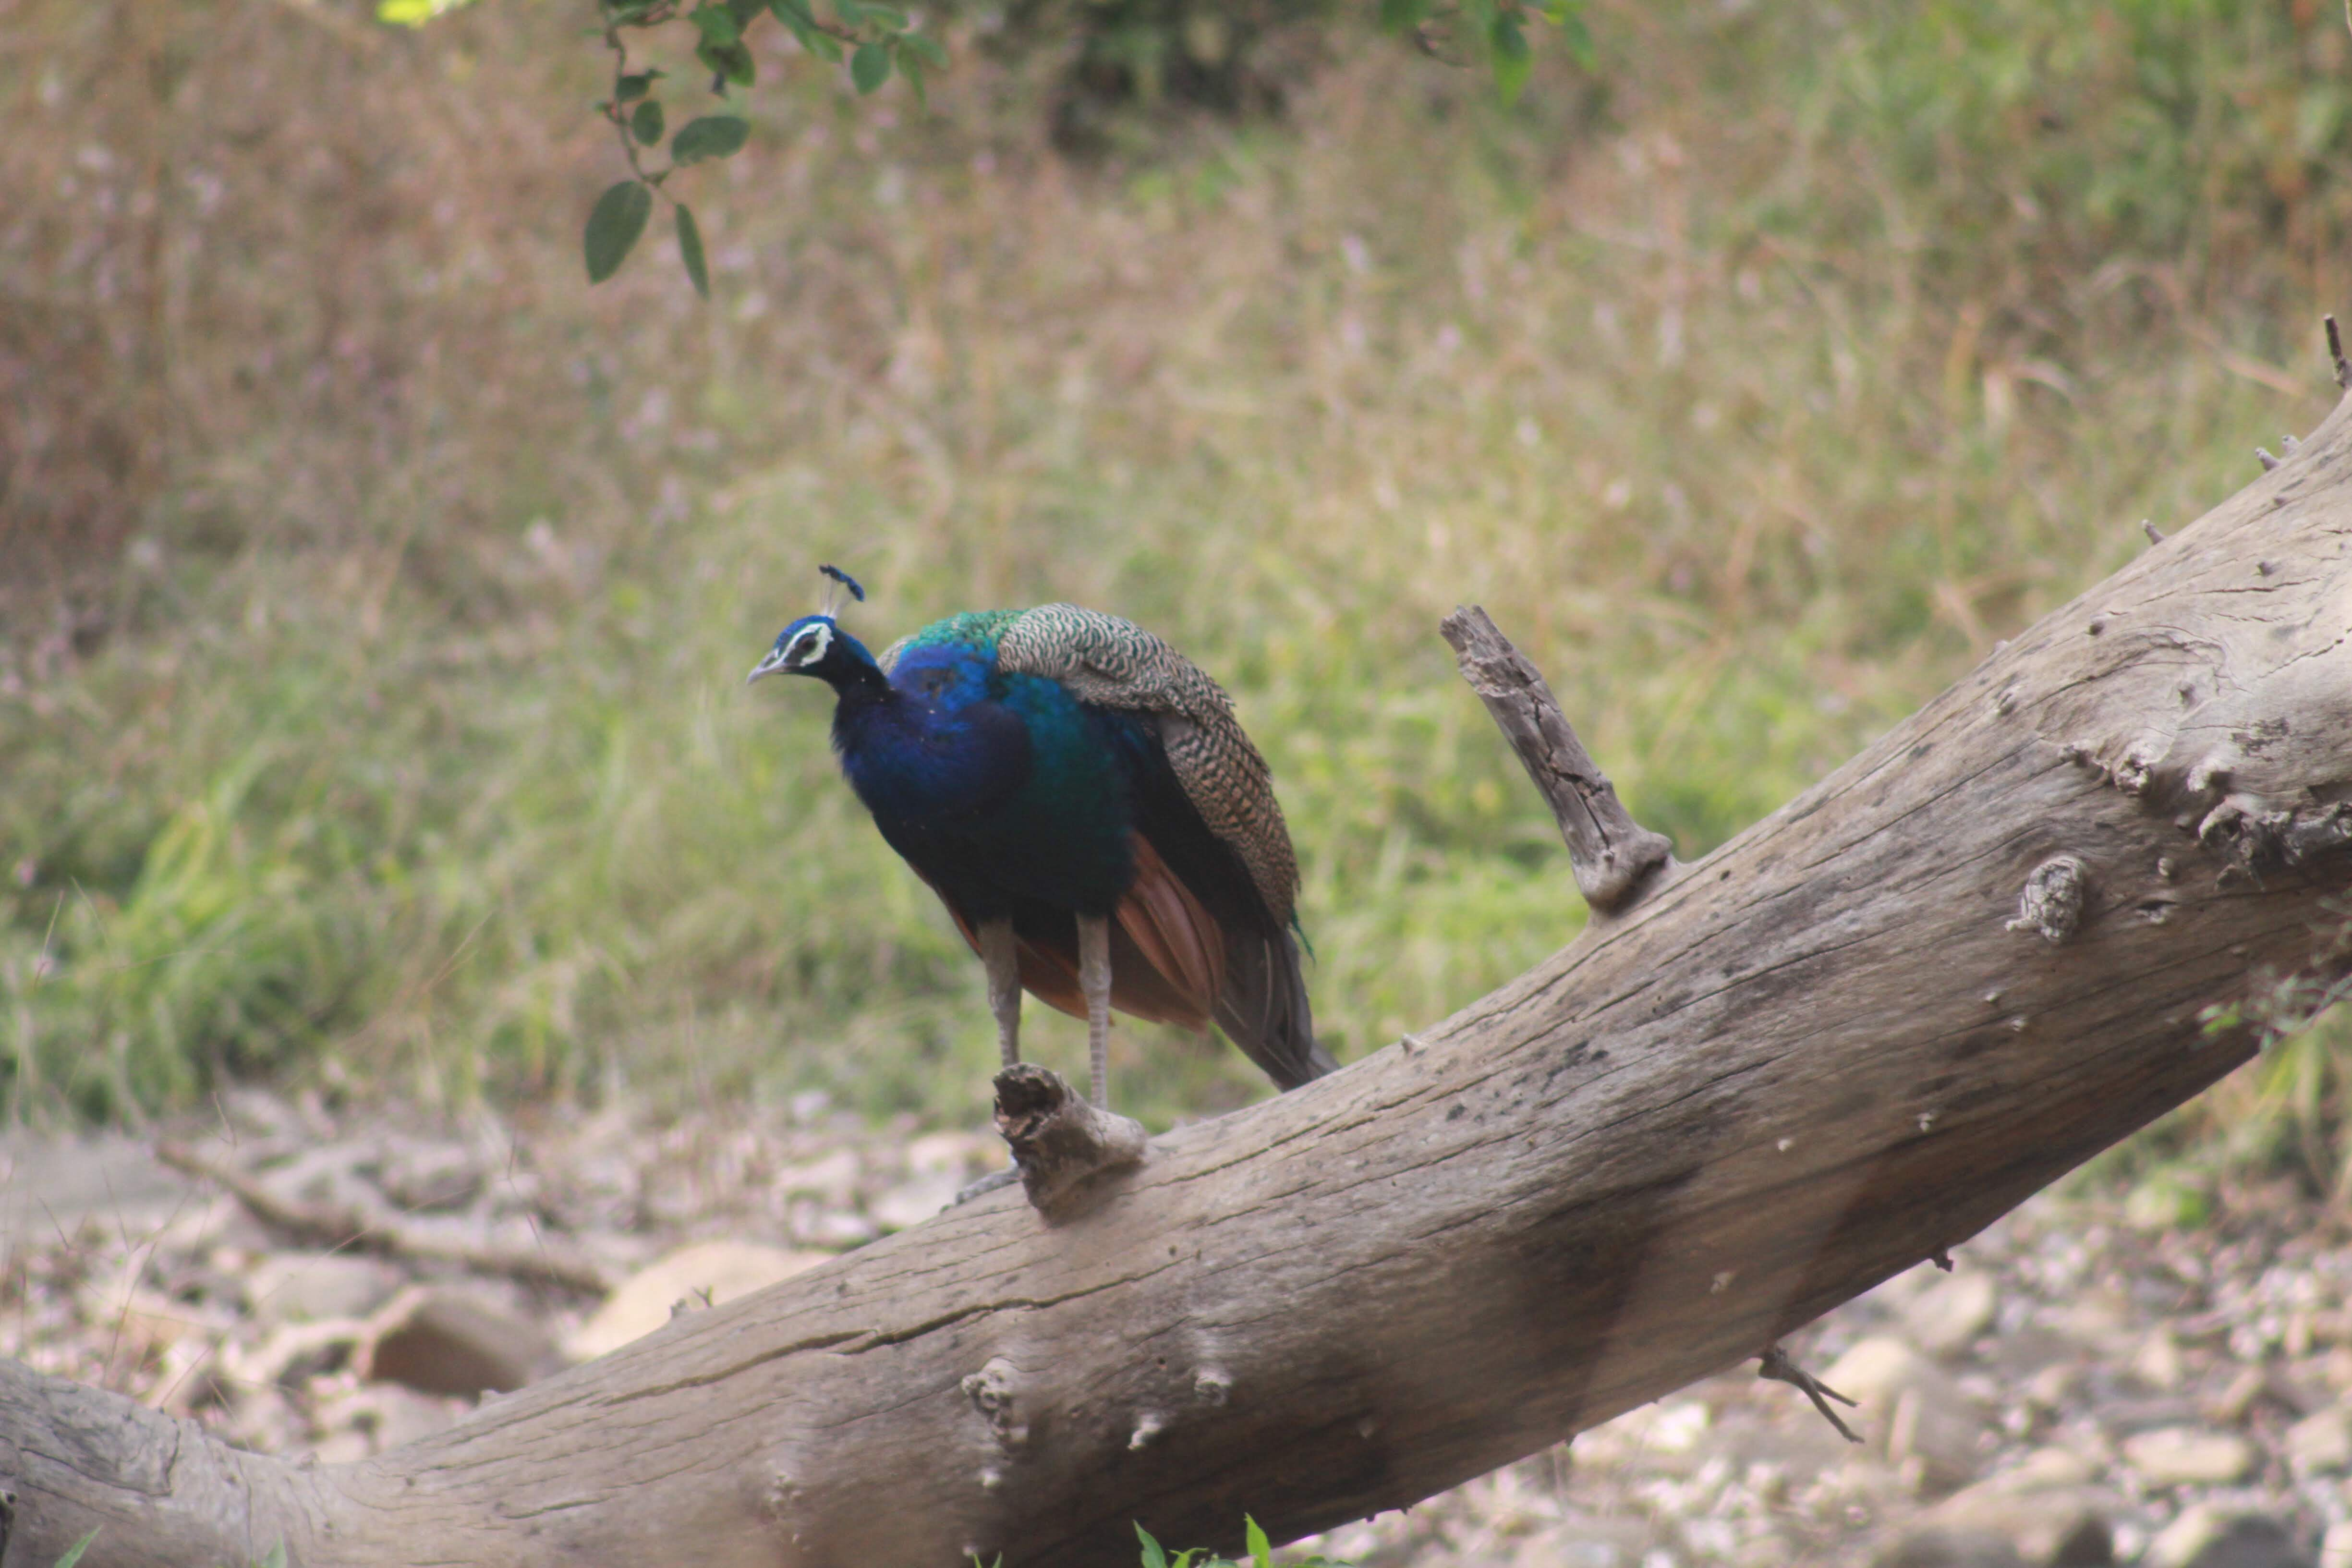 Peacock, Ranthambore National Park, India